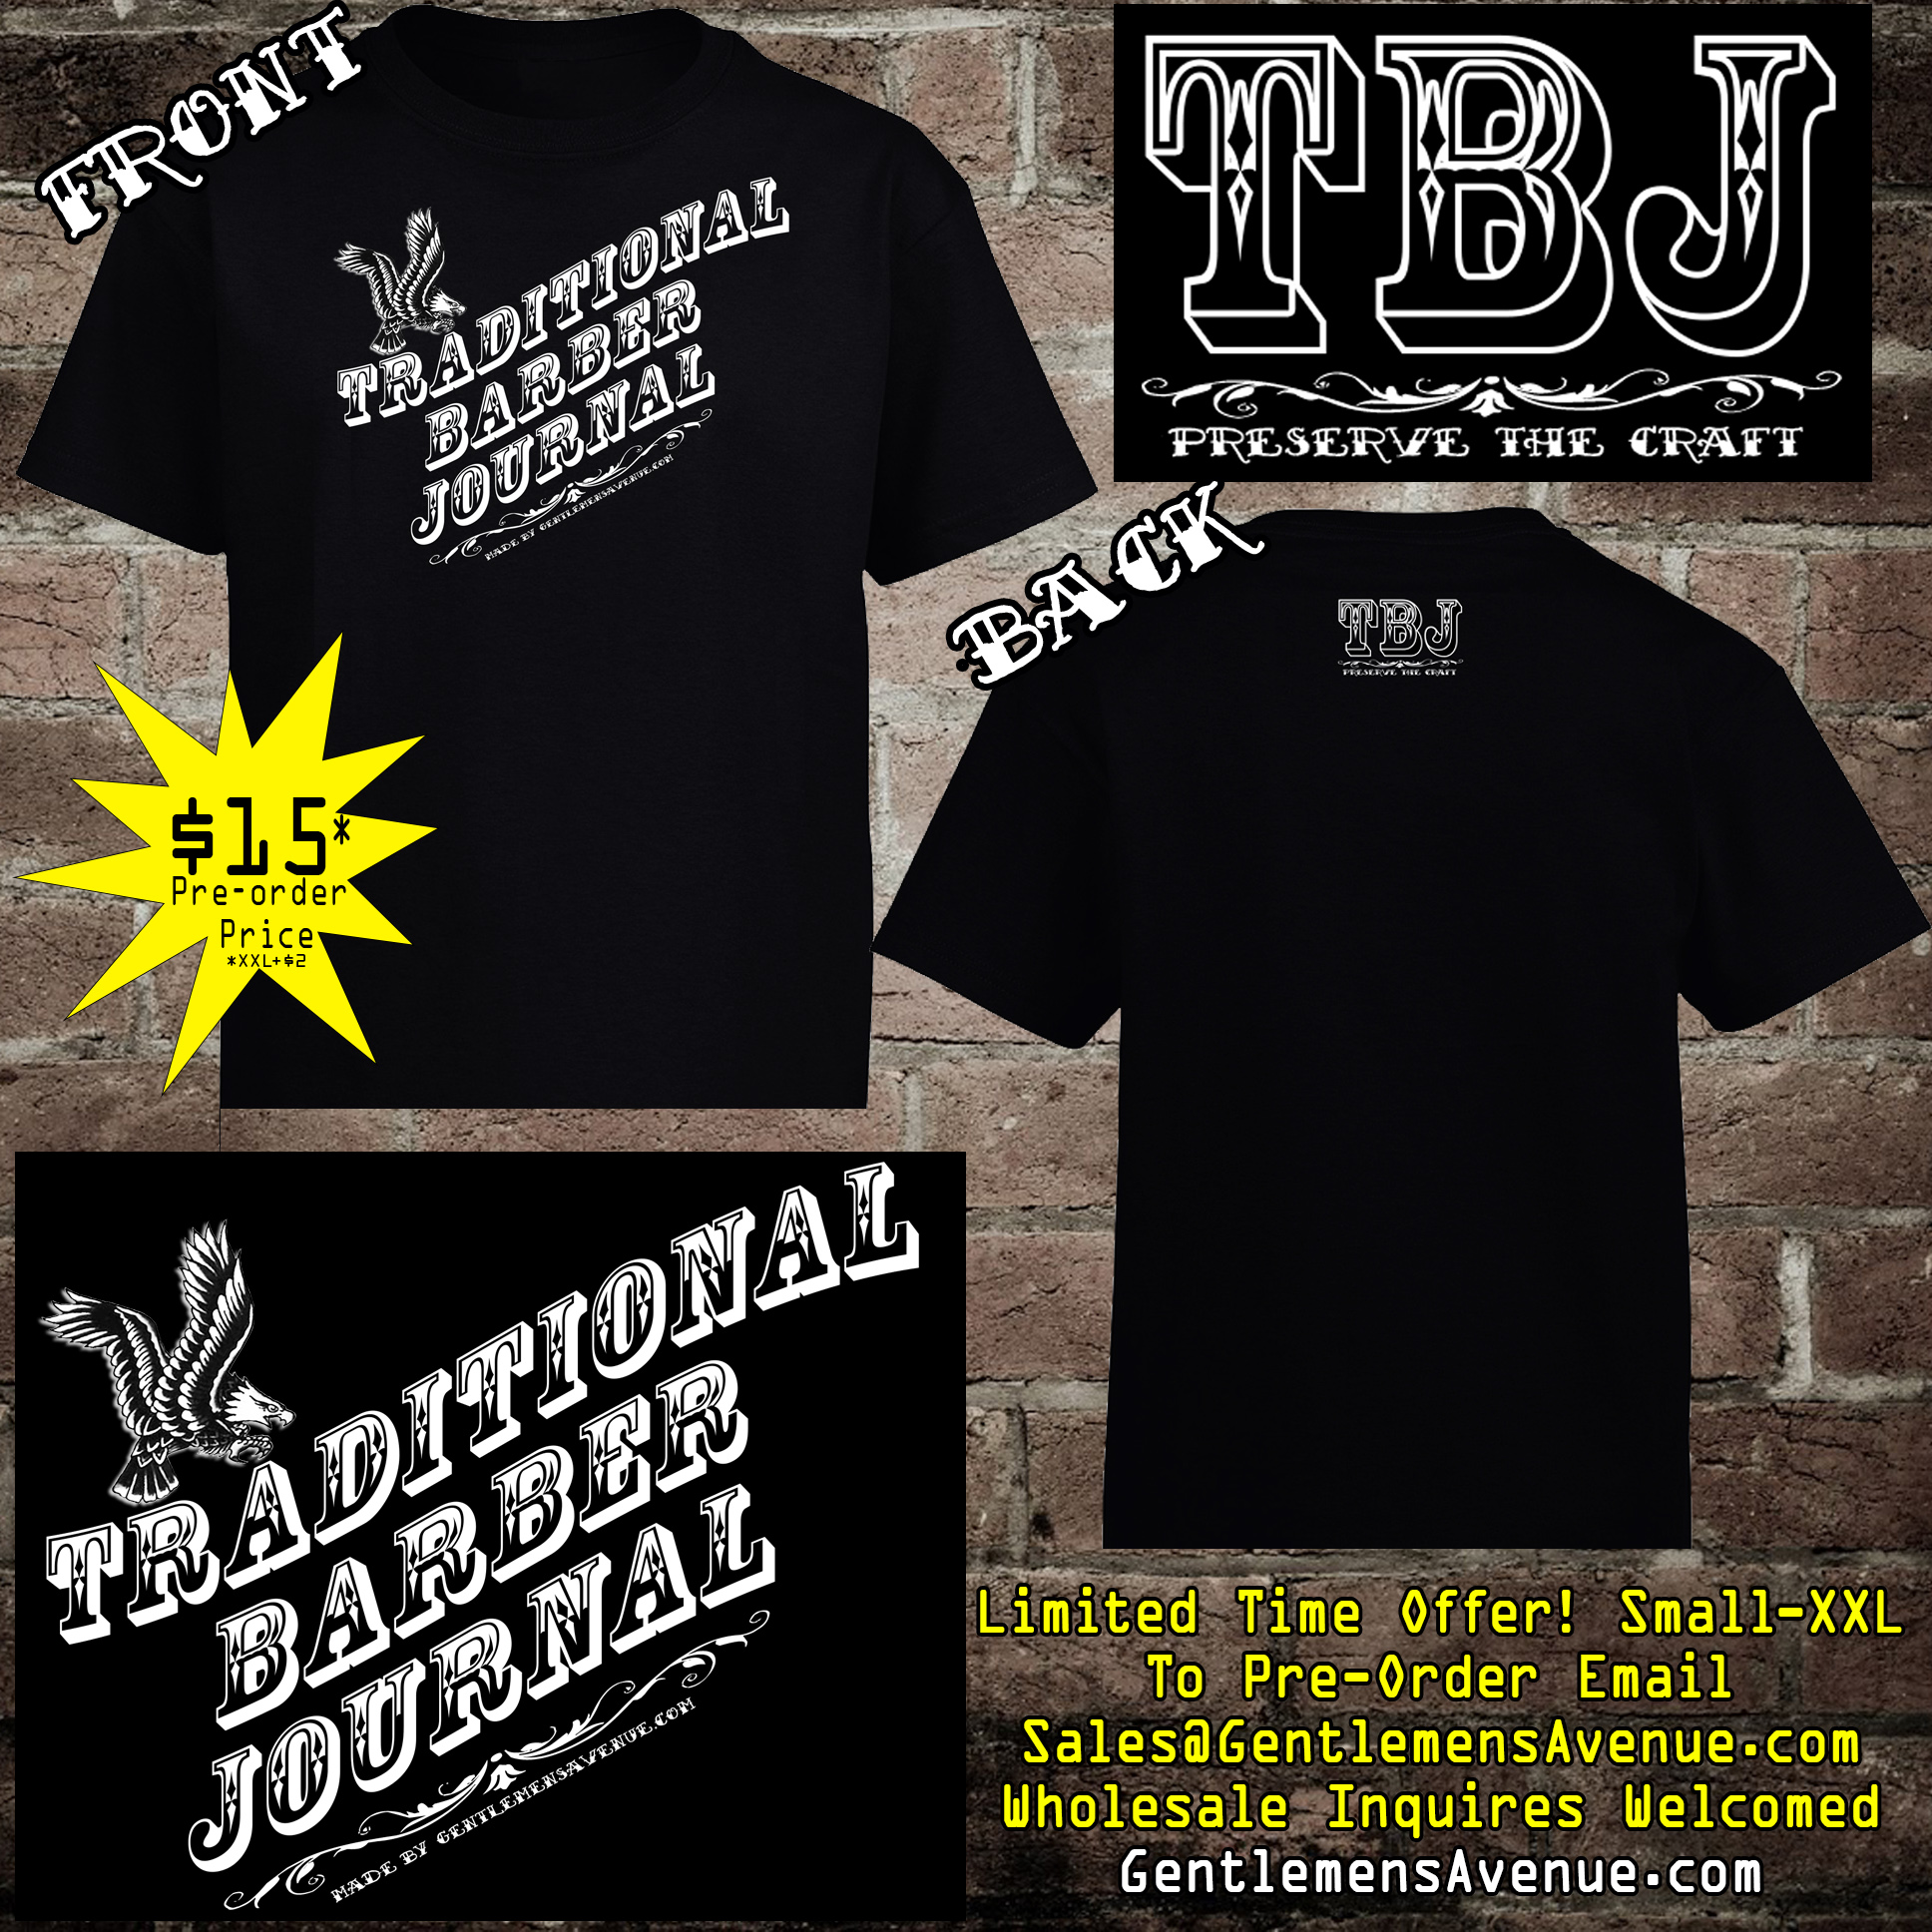 New Traditional Barber Journal T-Shirts Are Available For Pre ...